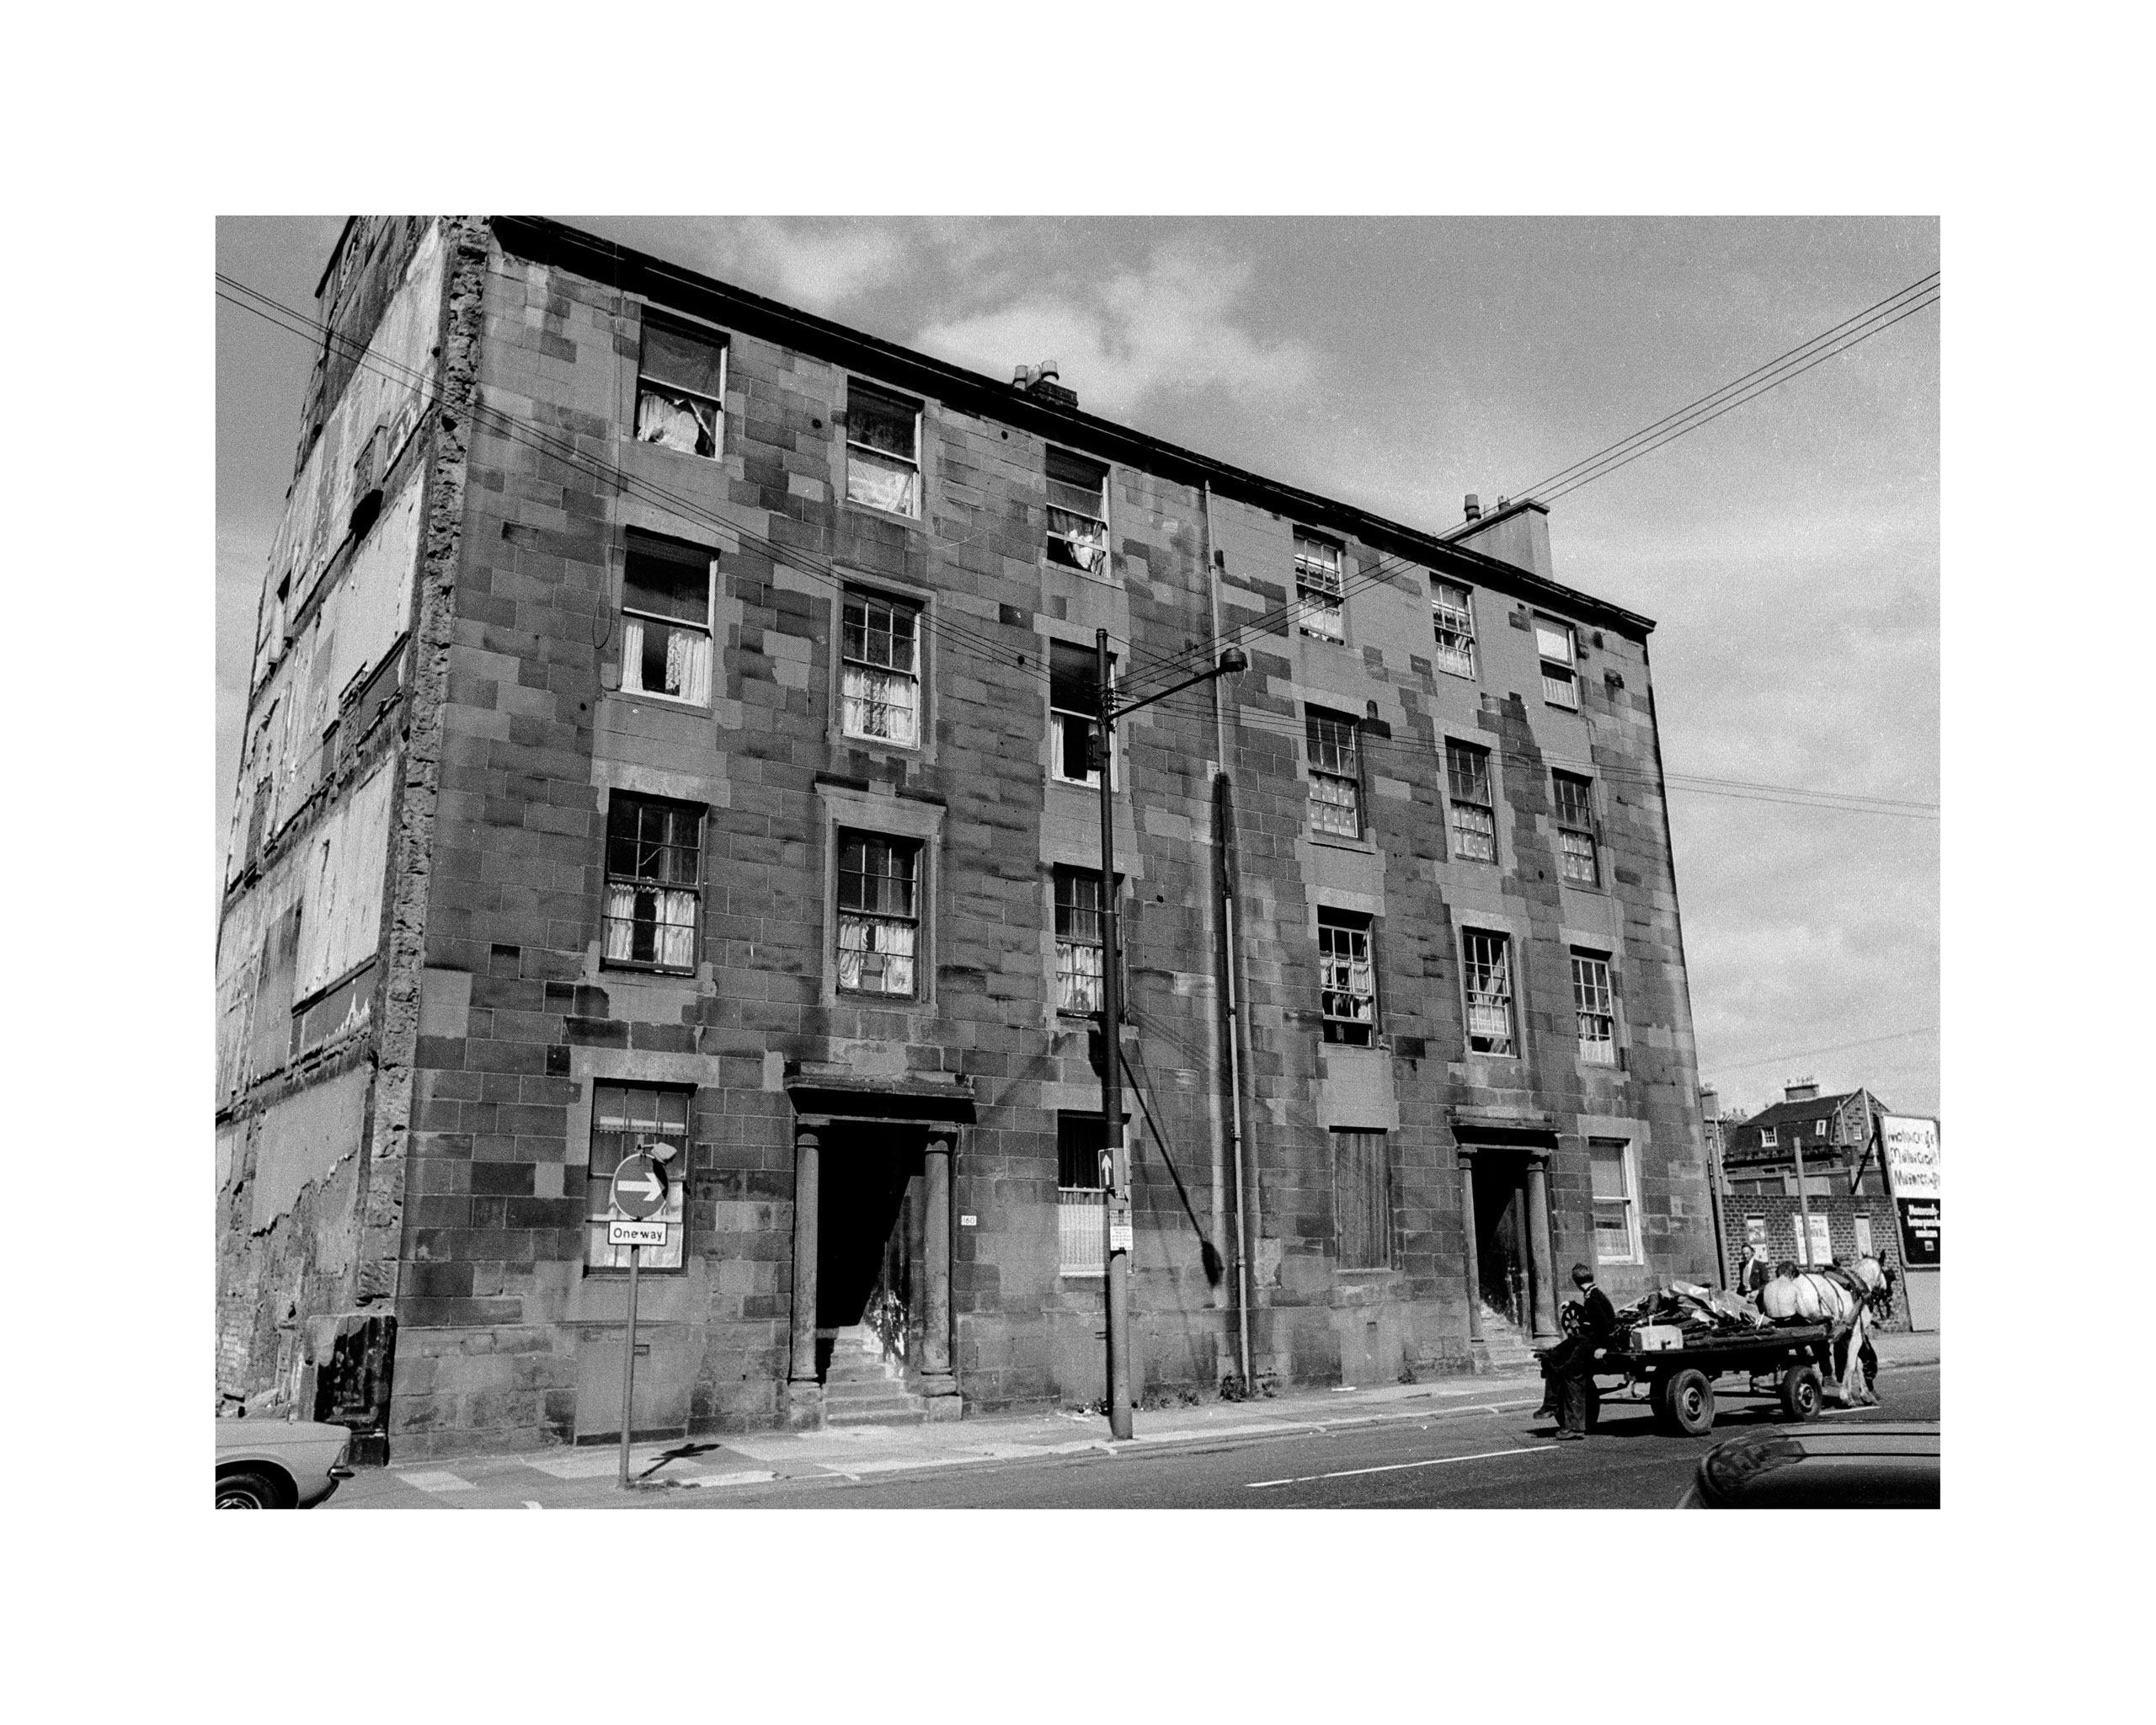 Image of Untitled, from 'Glasgow 1974'  (Tenement and Horse Car) by Hugh Hood